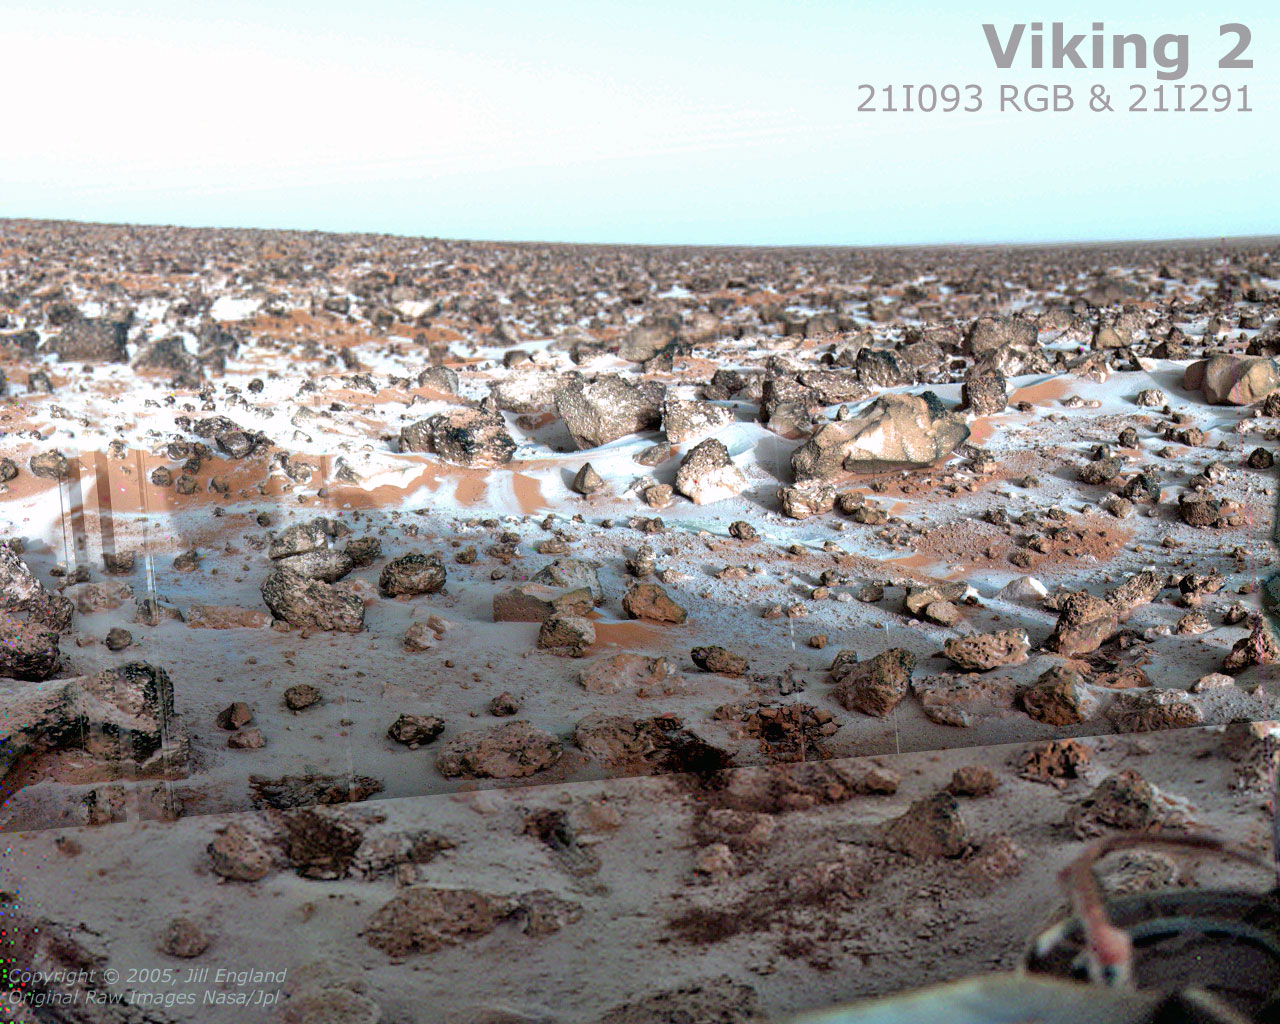 images from mars viking 2 - photo #20